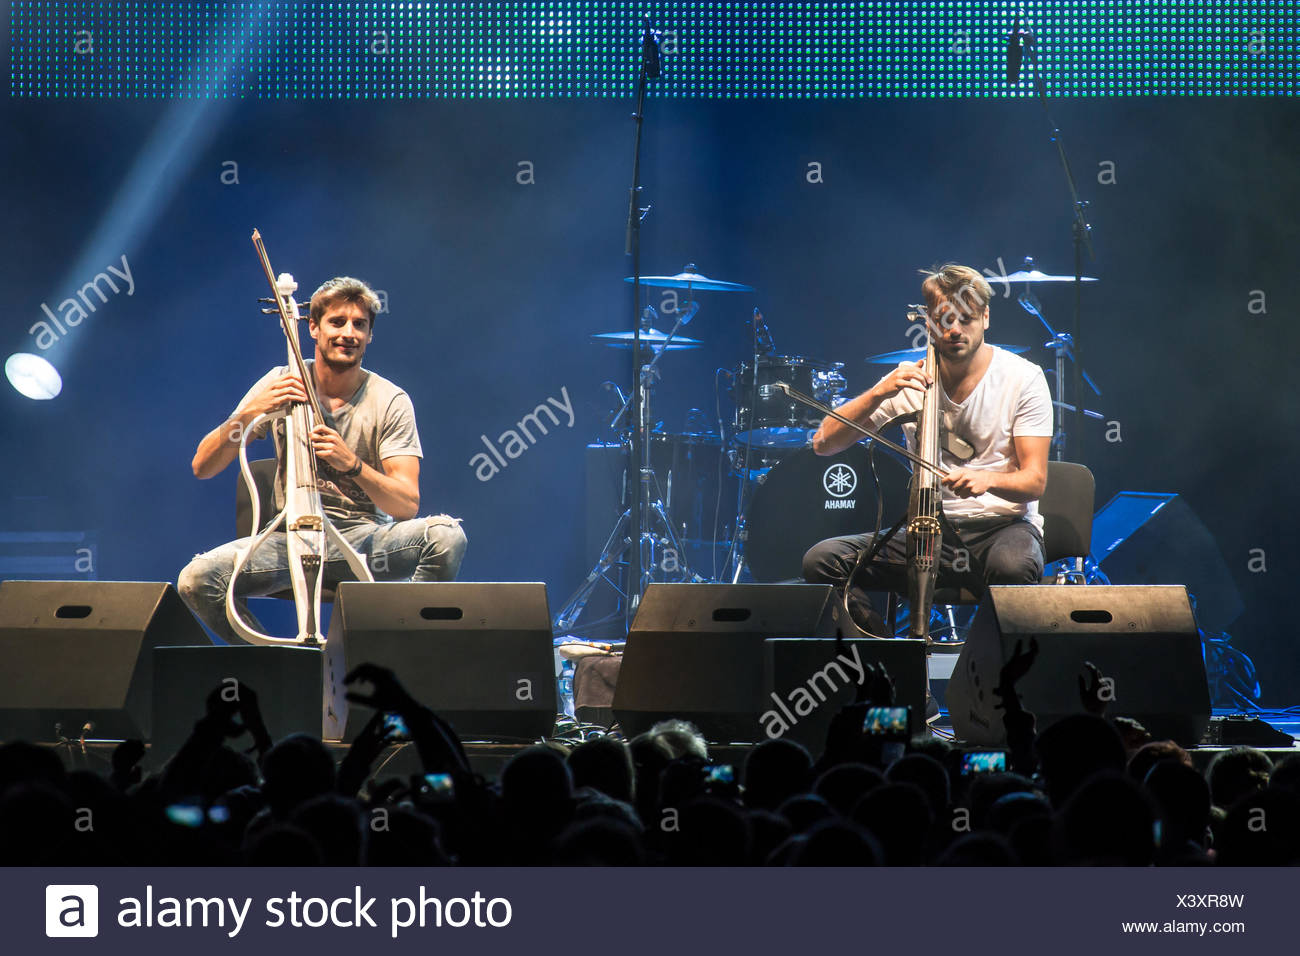 2cellos Stock Photos & 2cellos Stock Images